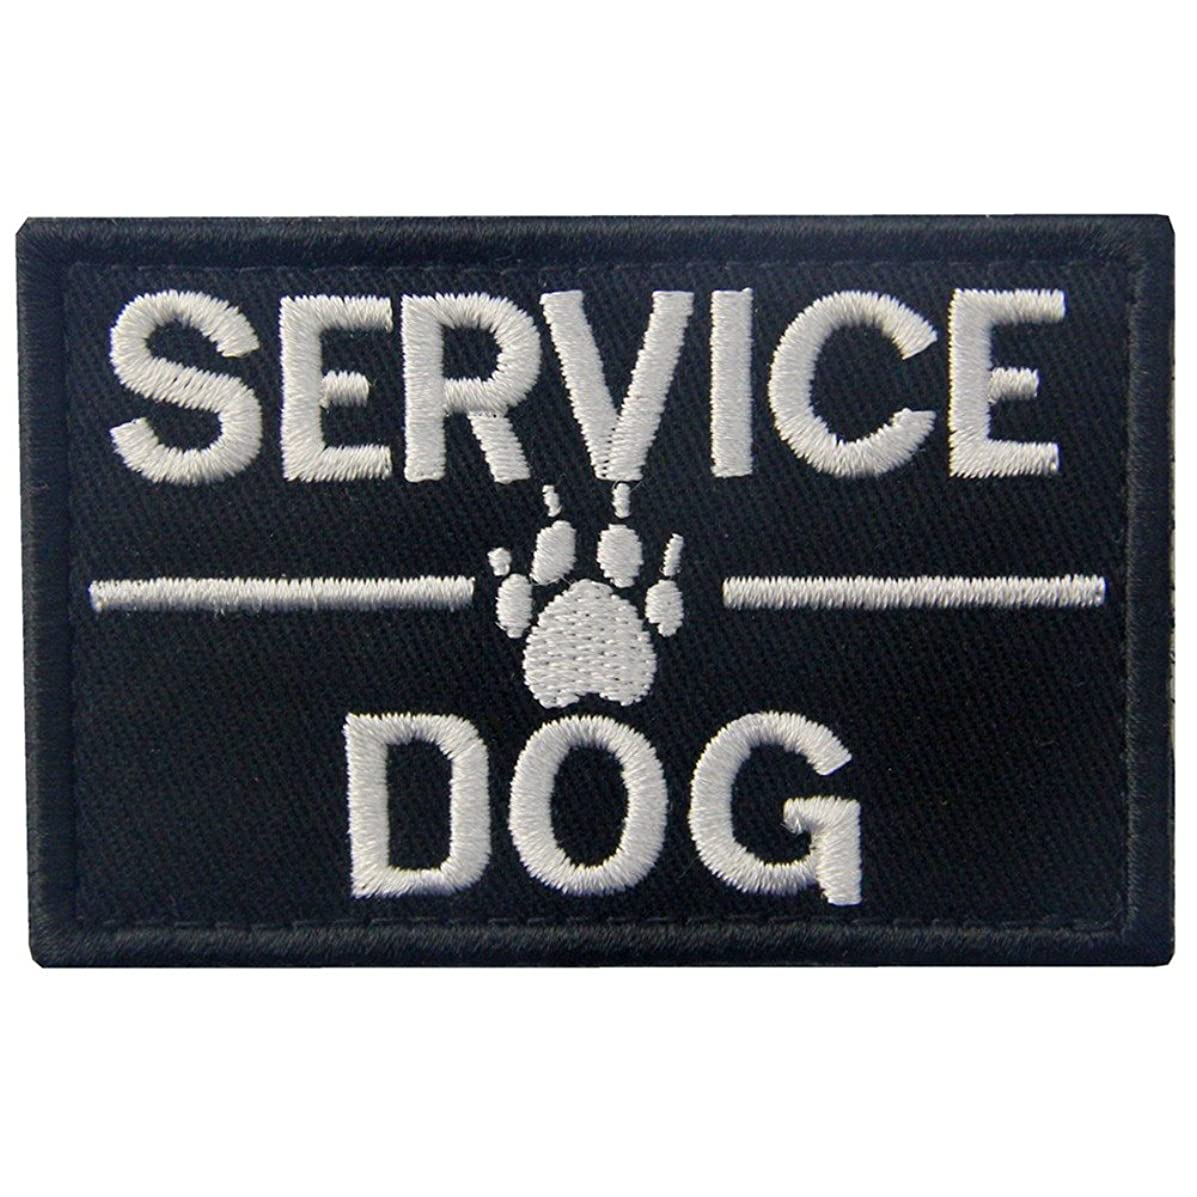 Service Dog with Tracker Paw Embroidered Applique Morale Hook & Loop Patch - White